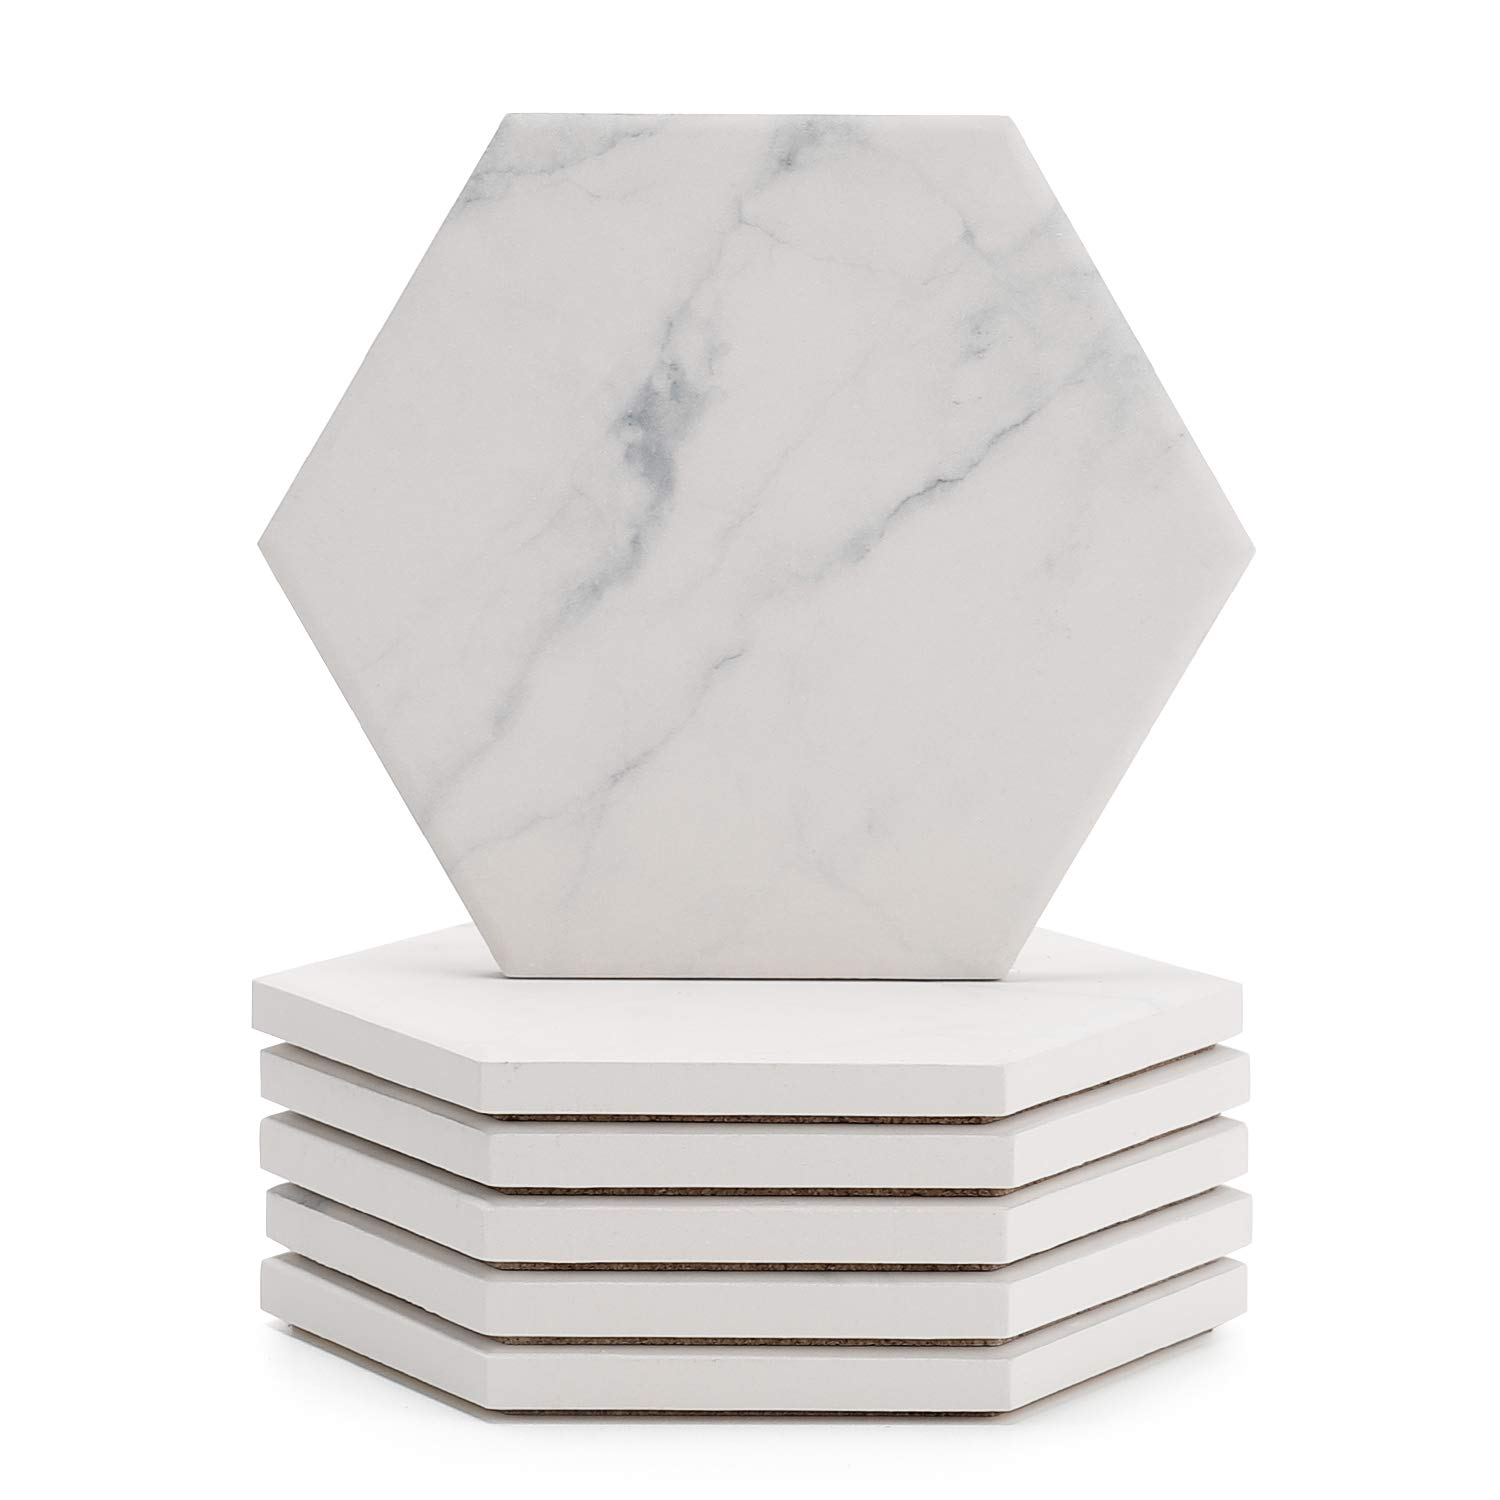 Sweese 3413 White Marble Pattern Absorbent Ceramic Coasters for Drink with Cork Back, Prevent Furniture from Dirty, Spills, Water Ring and Scratched, Set of 6